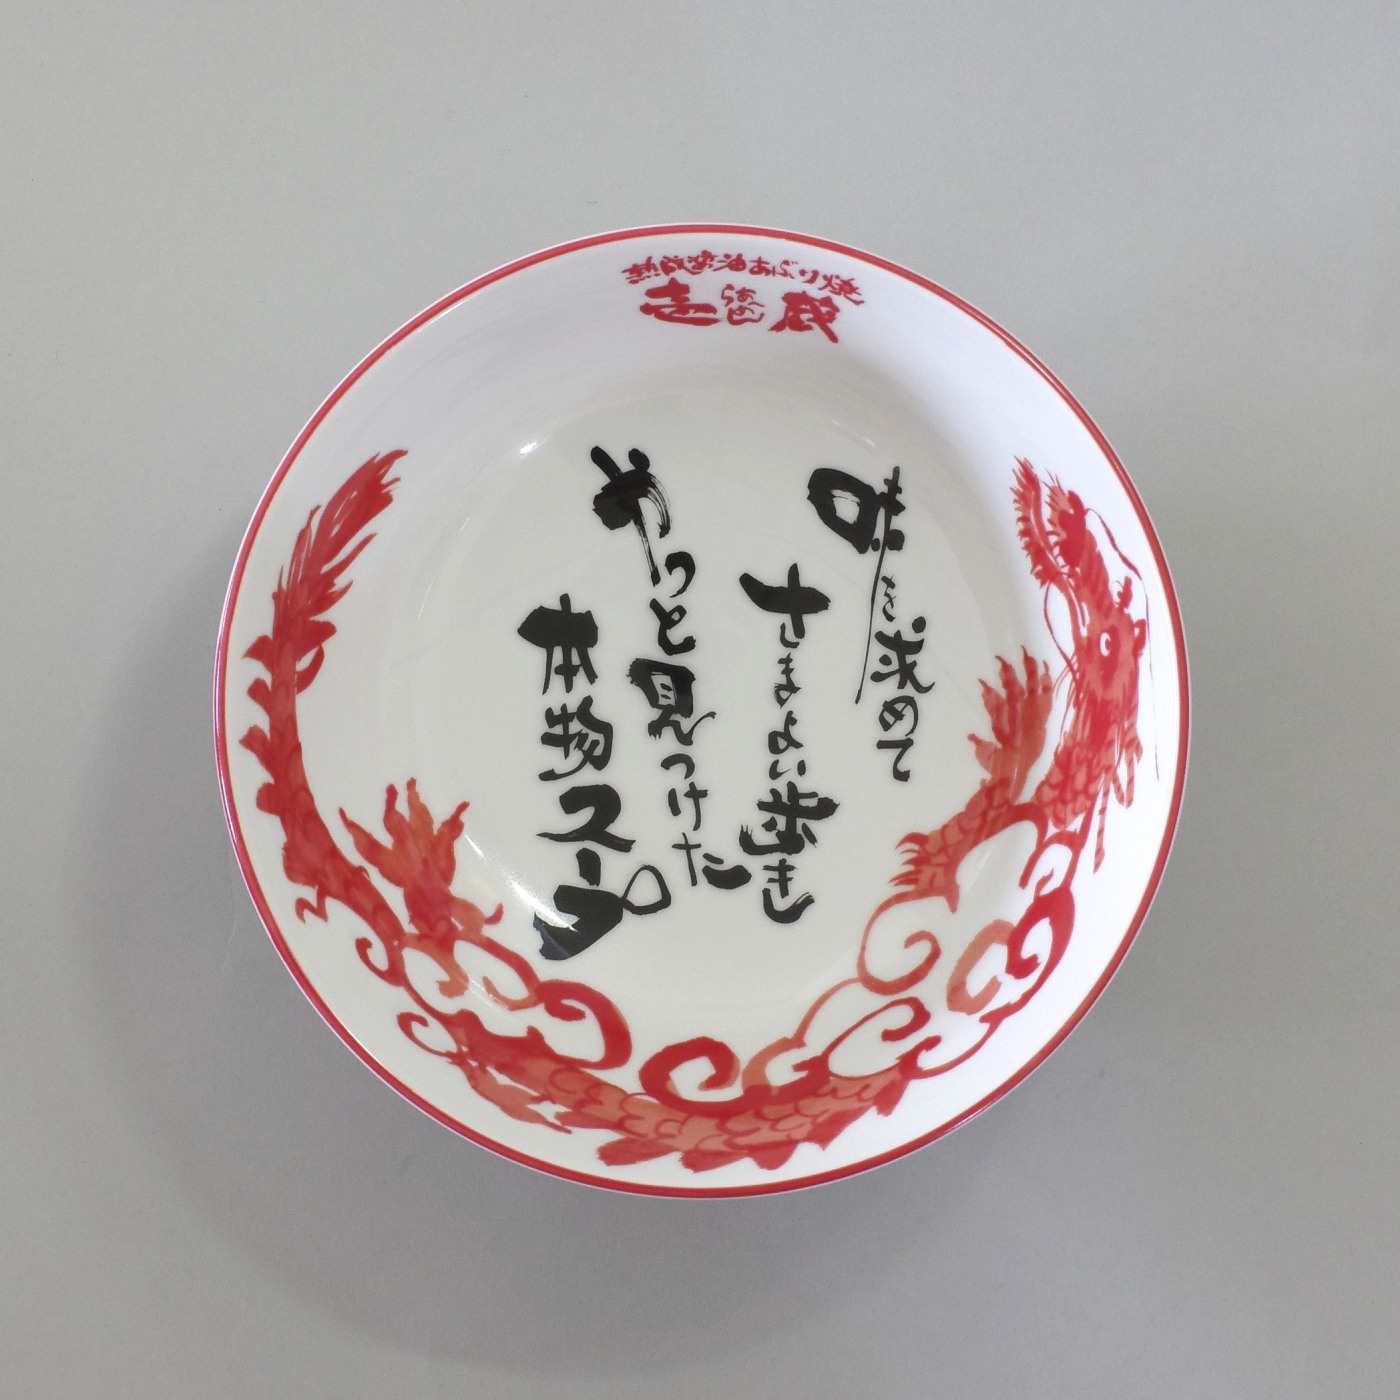 Customized Ramen Bowl (Logo and Message) Designed by Miyake